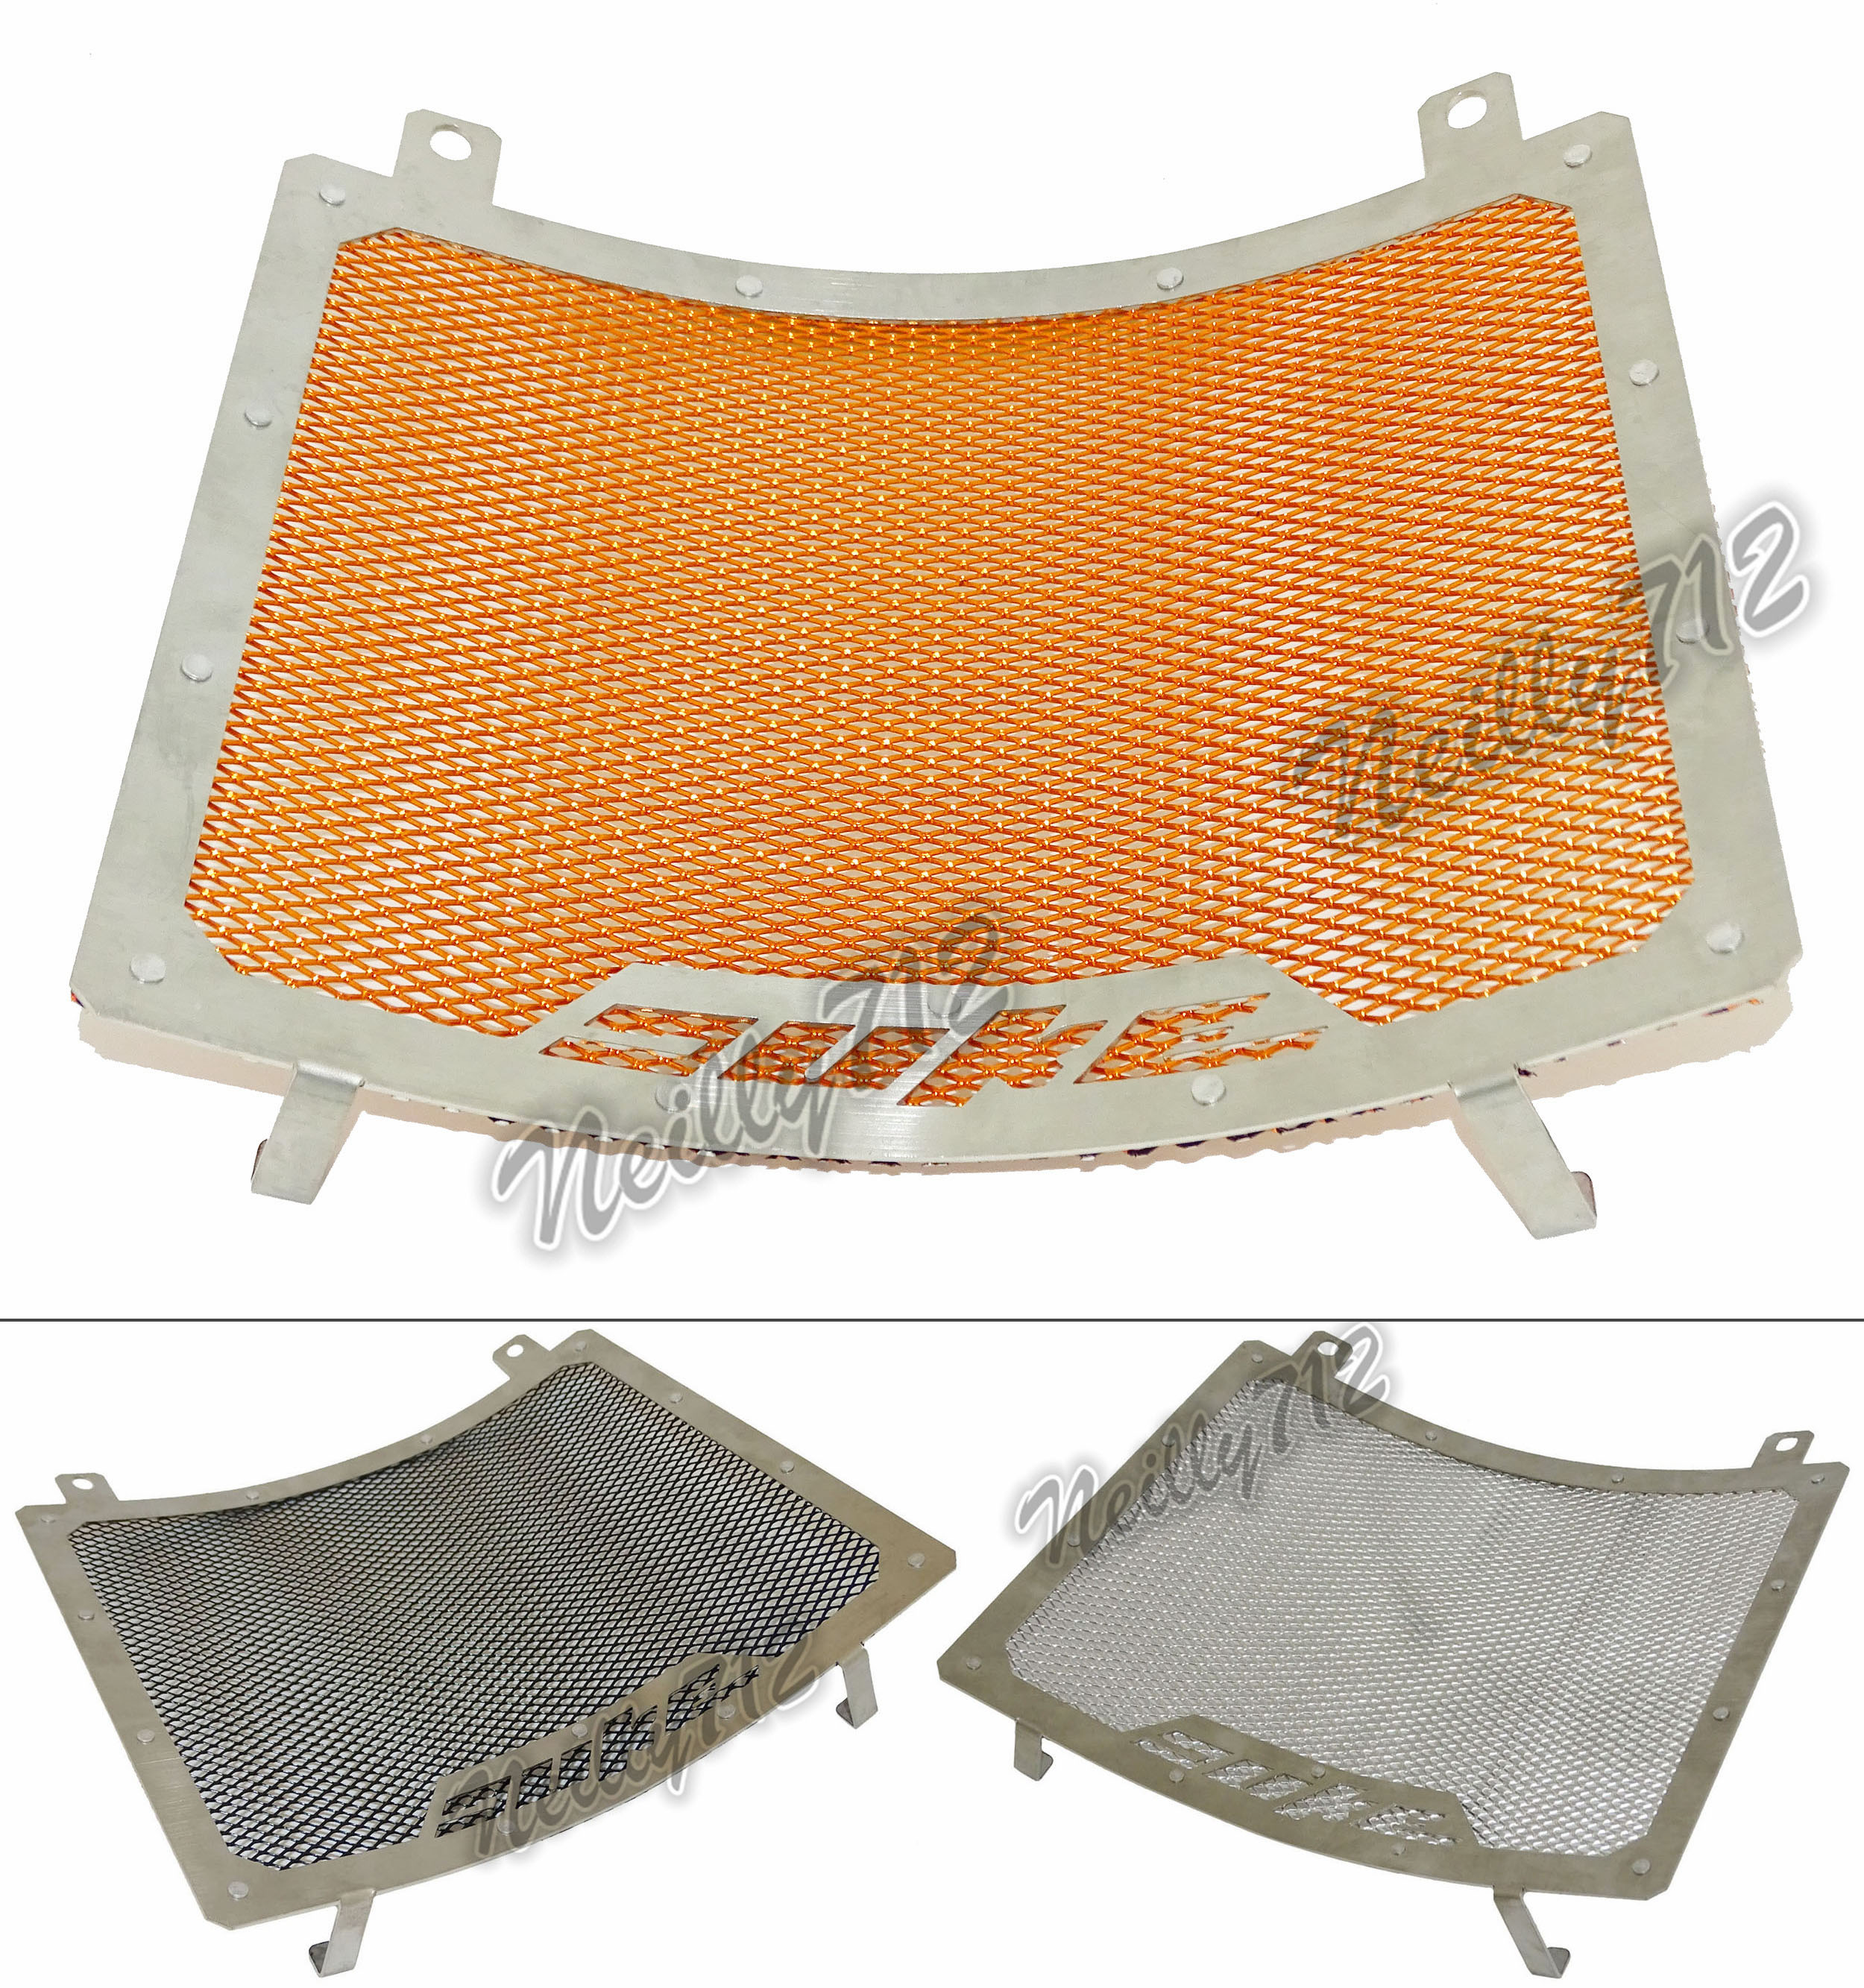 Radiator Protective Cover Grill Guard Grille Protector For KTM Duke 690 2012 2013 2014 2015 2016 2017 arashi radiator grille protective cover grill guard protector for suzuki gsxr1000 2009 2010 2011 2012 2013 2014 2015 2016